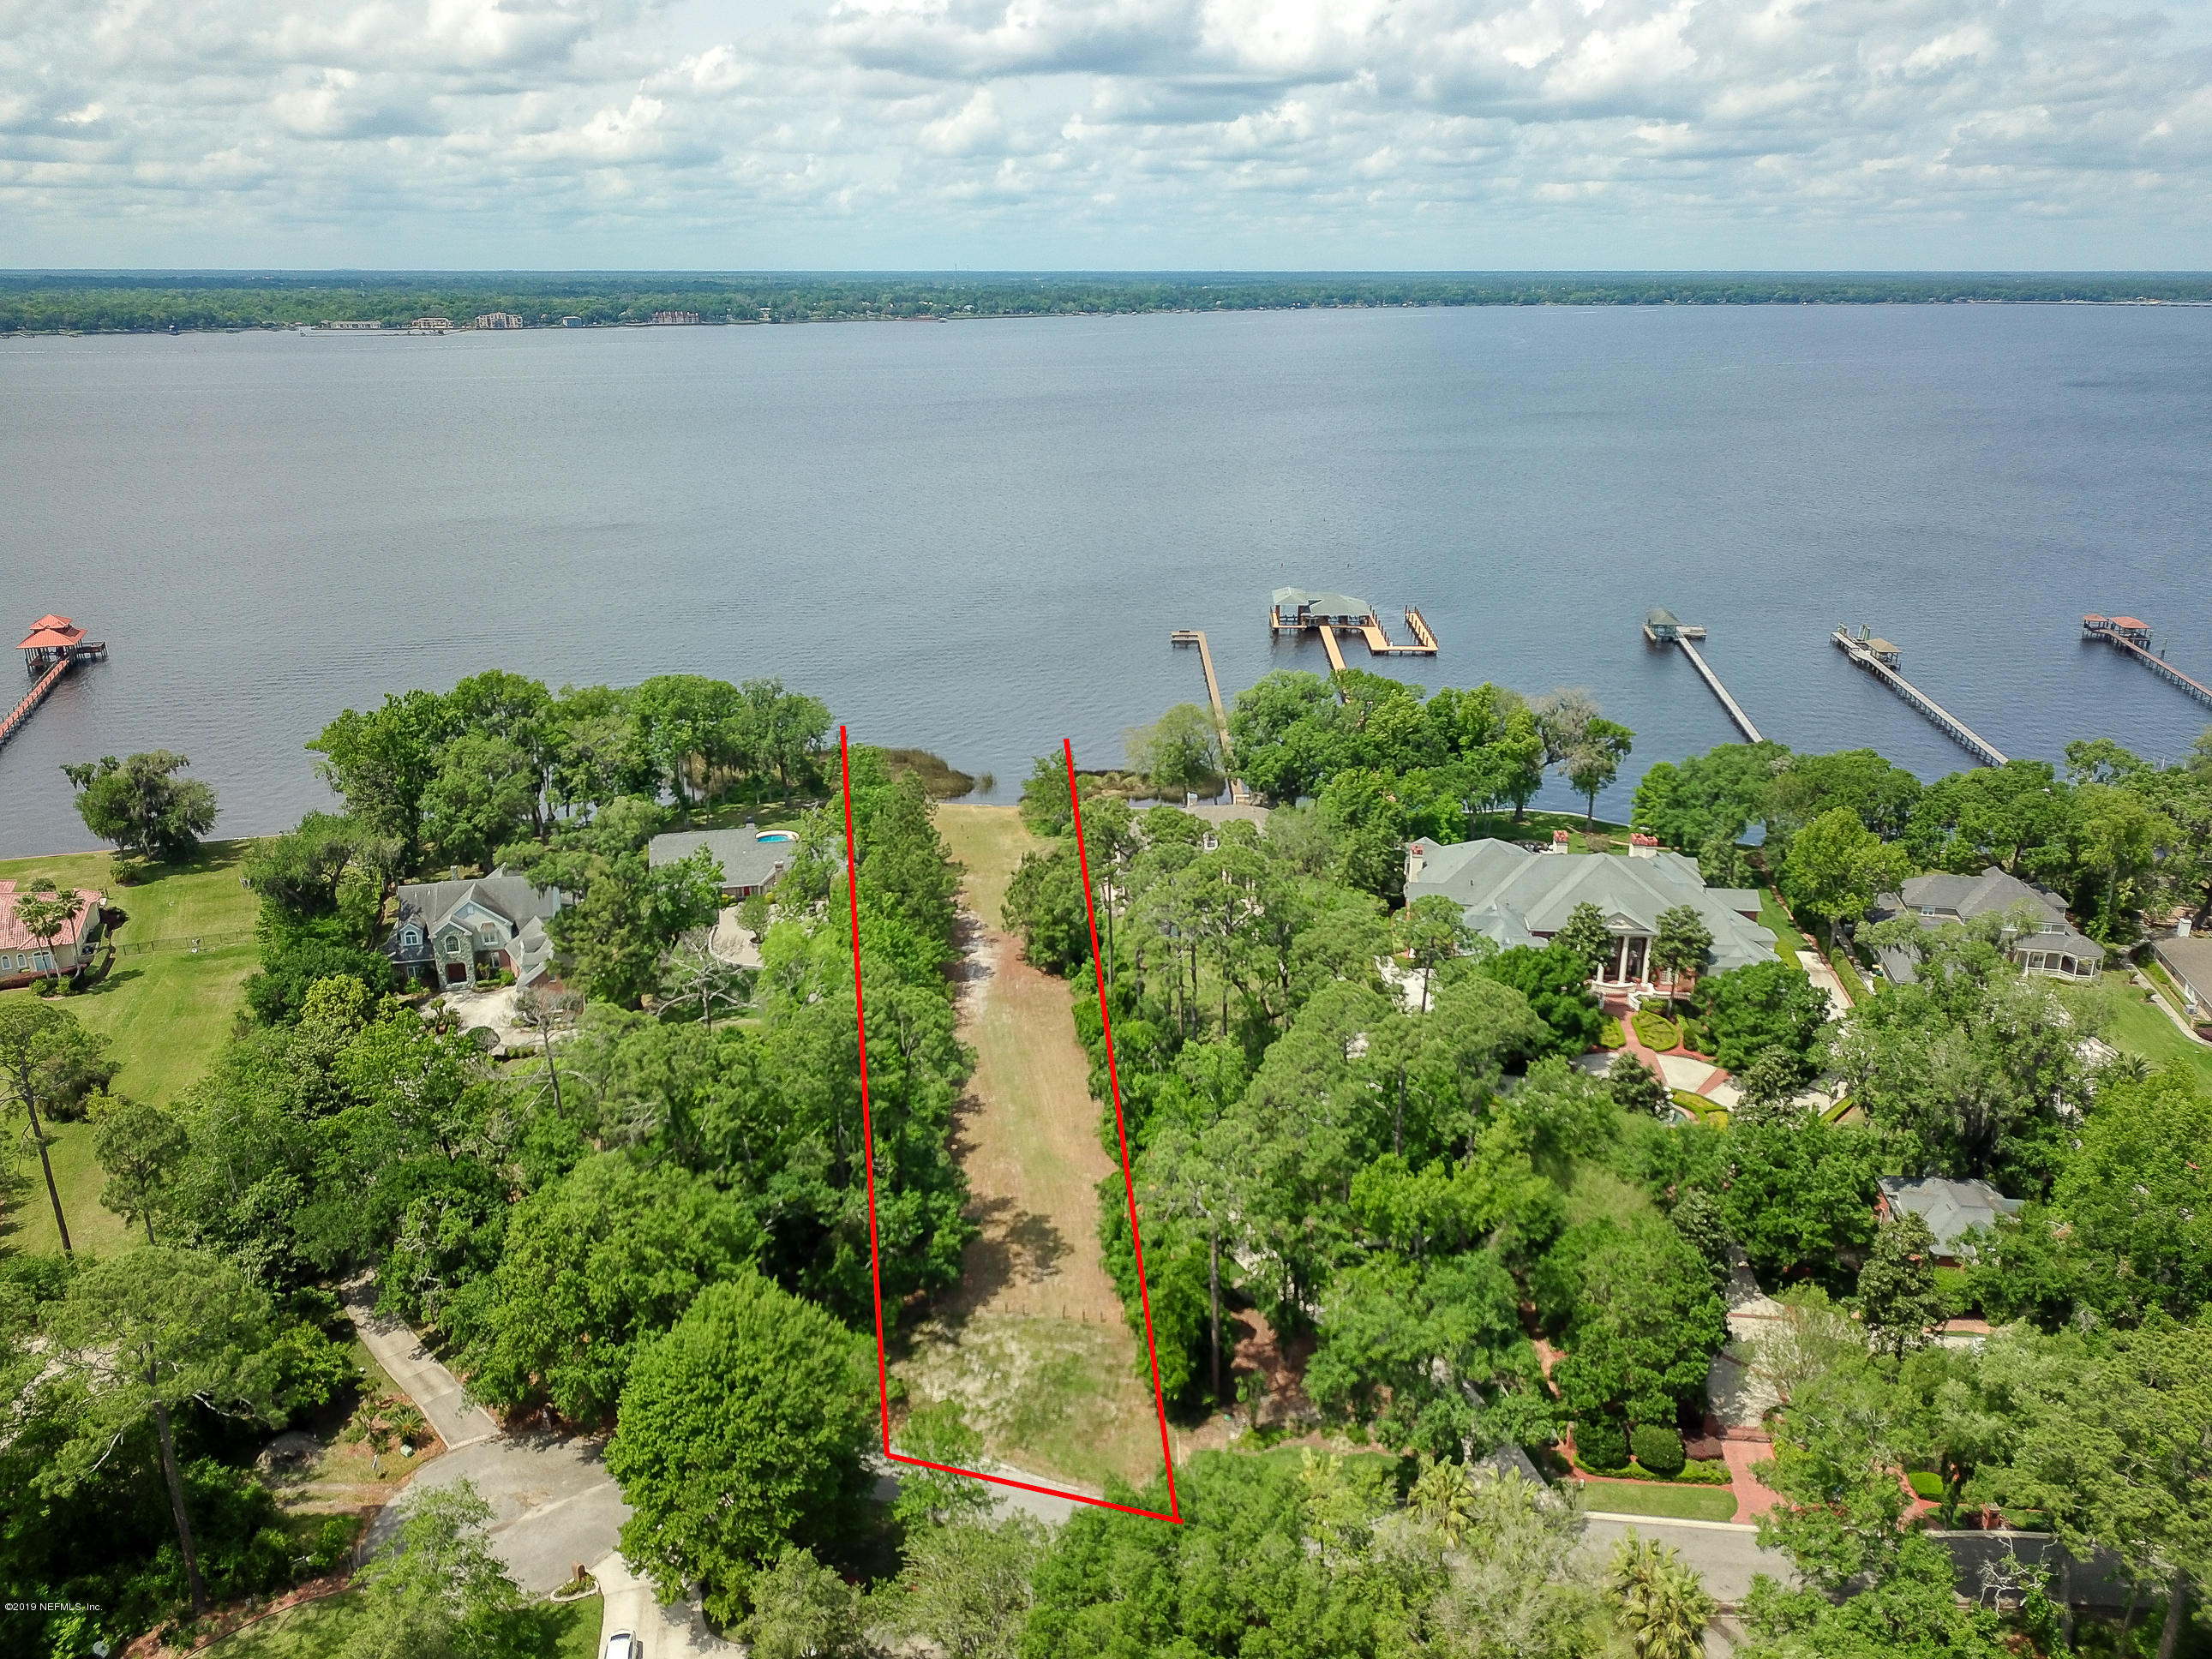 0 RIVERPLACE, JACKSONVILLE, FLORIDA 32223, ,Vacant land,For sale,RIVERPLACE,989025